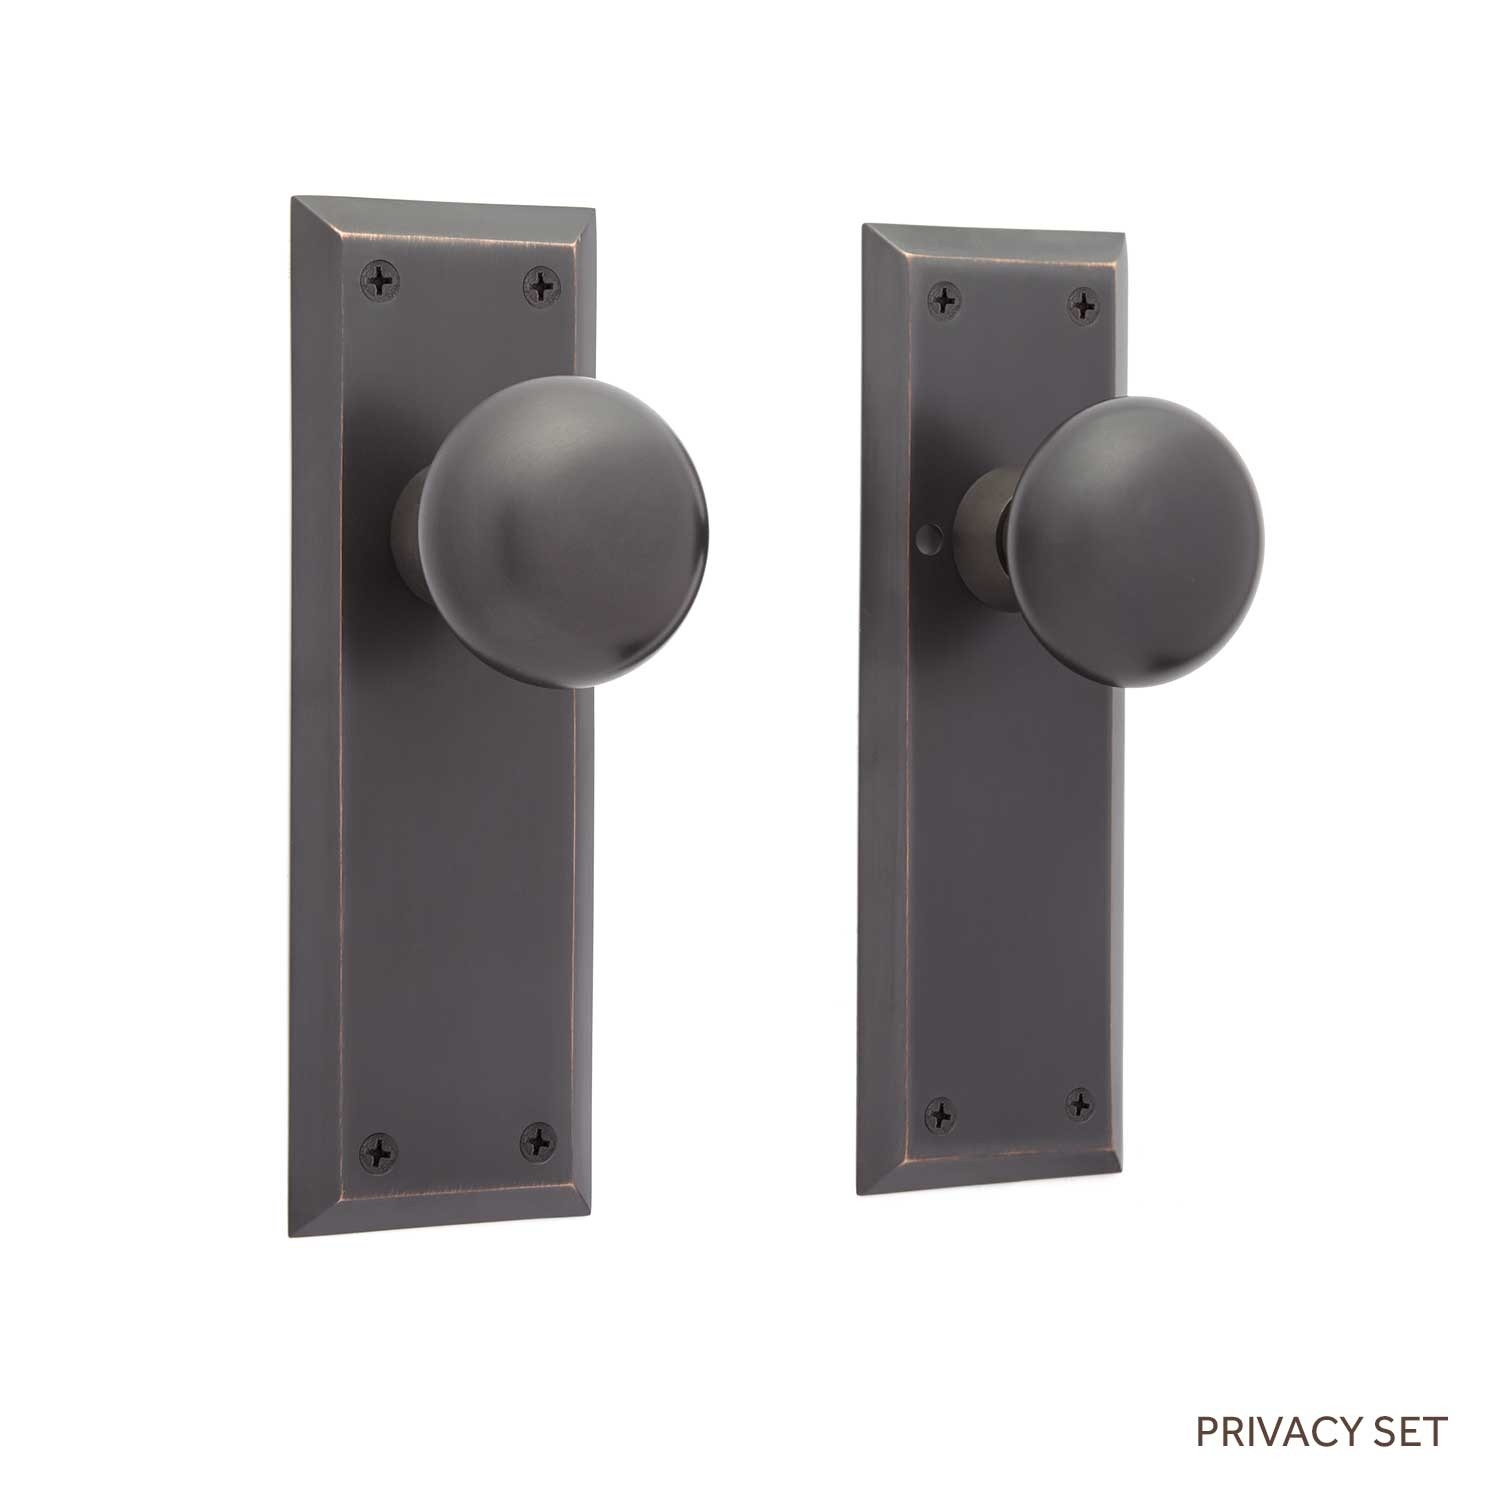 Egg Knob Door Hardware